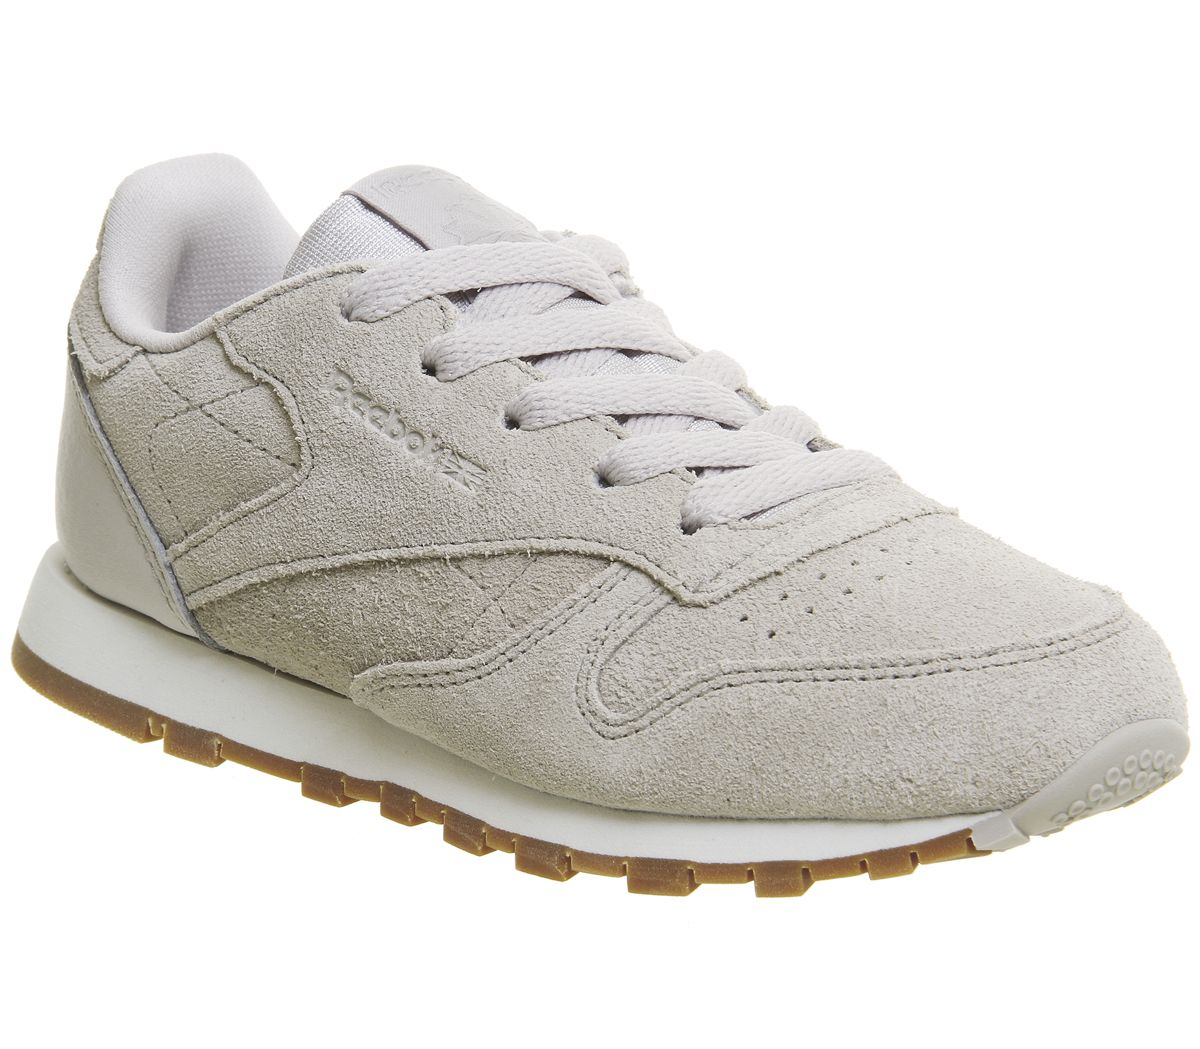 4437a277fdcbf Reebok Classic Leather Ps Sandstone Chalk Gum - Unisex